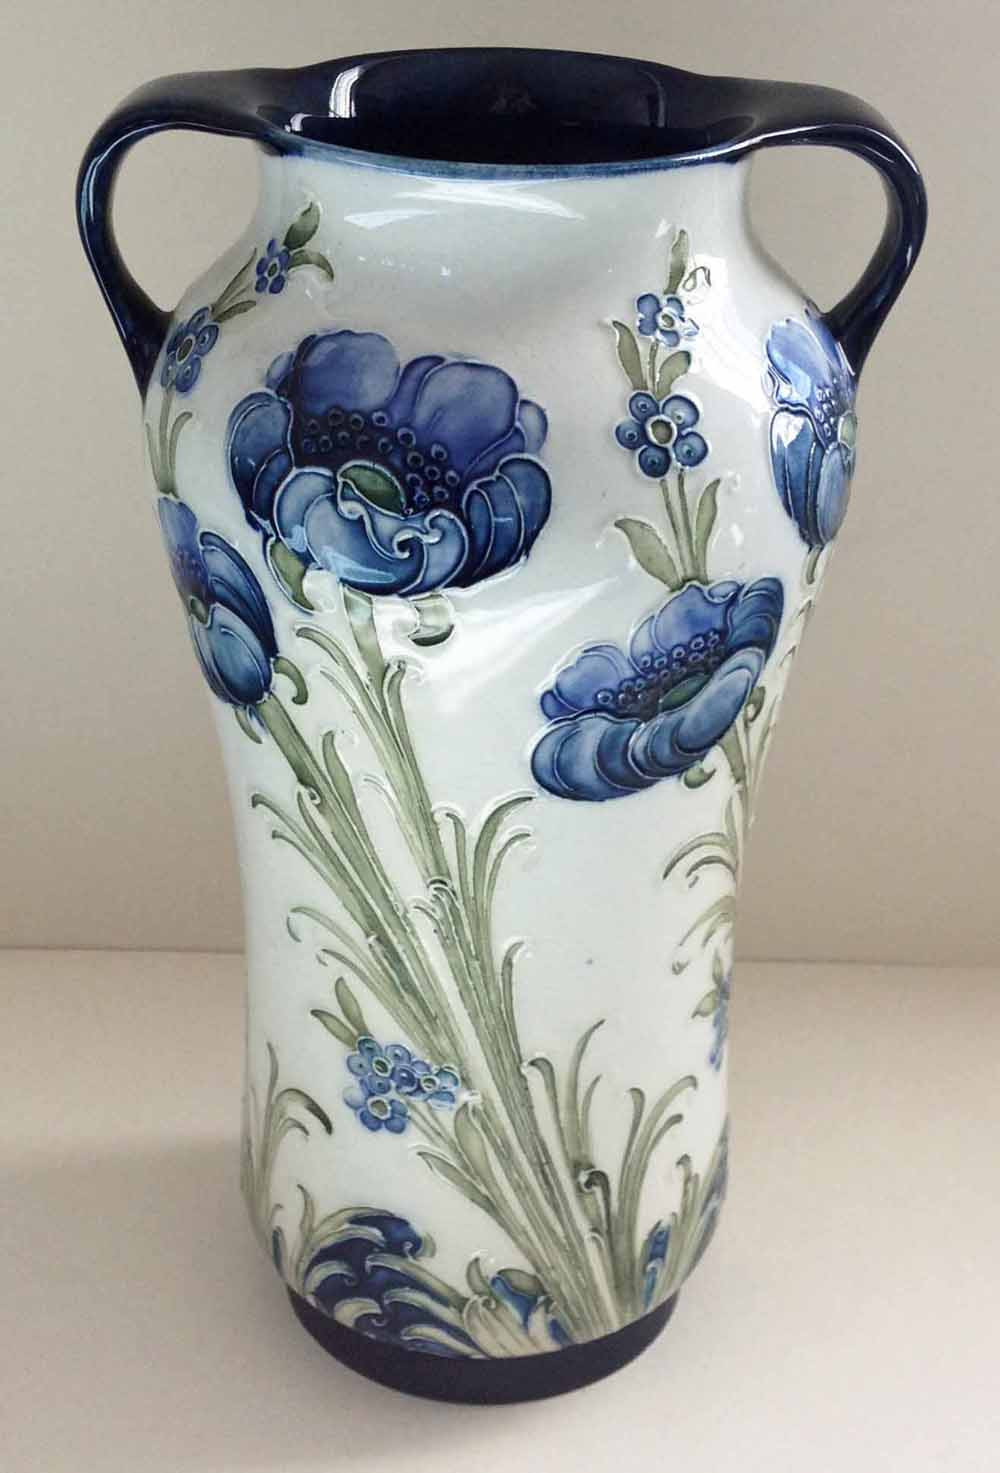 florian ware vase of lot preview moorcroft vases townsend auctions norfolks quality pertaining to william moorcroft white two handled vase with blue poppy pattern